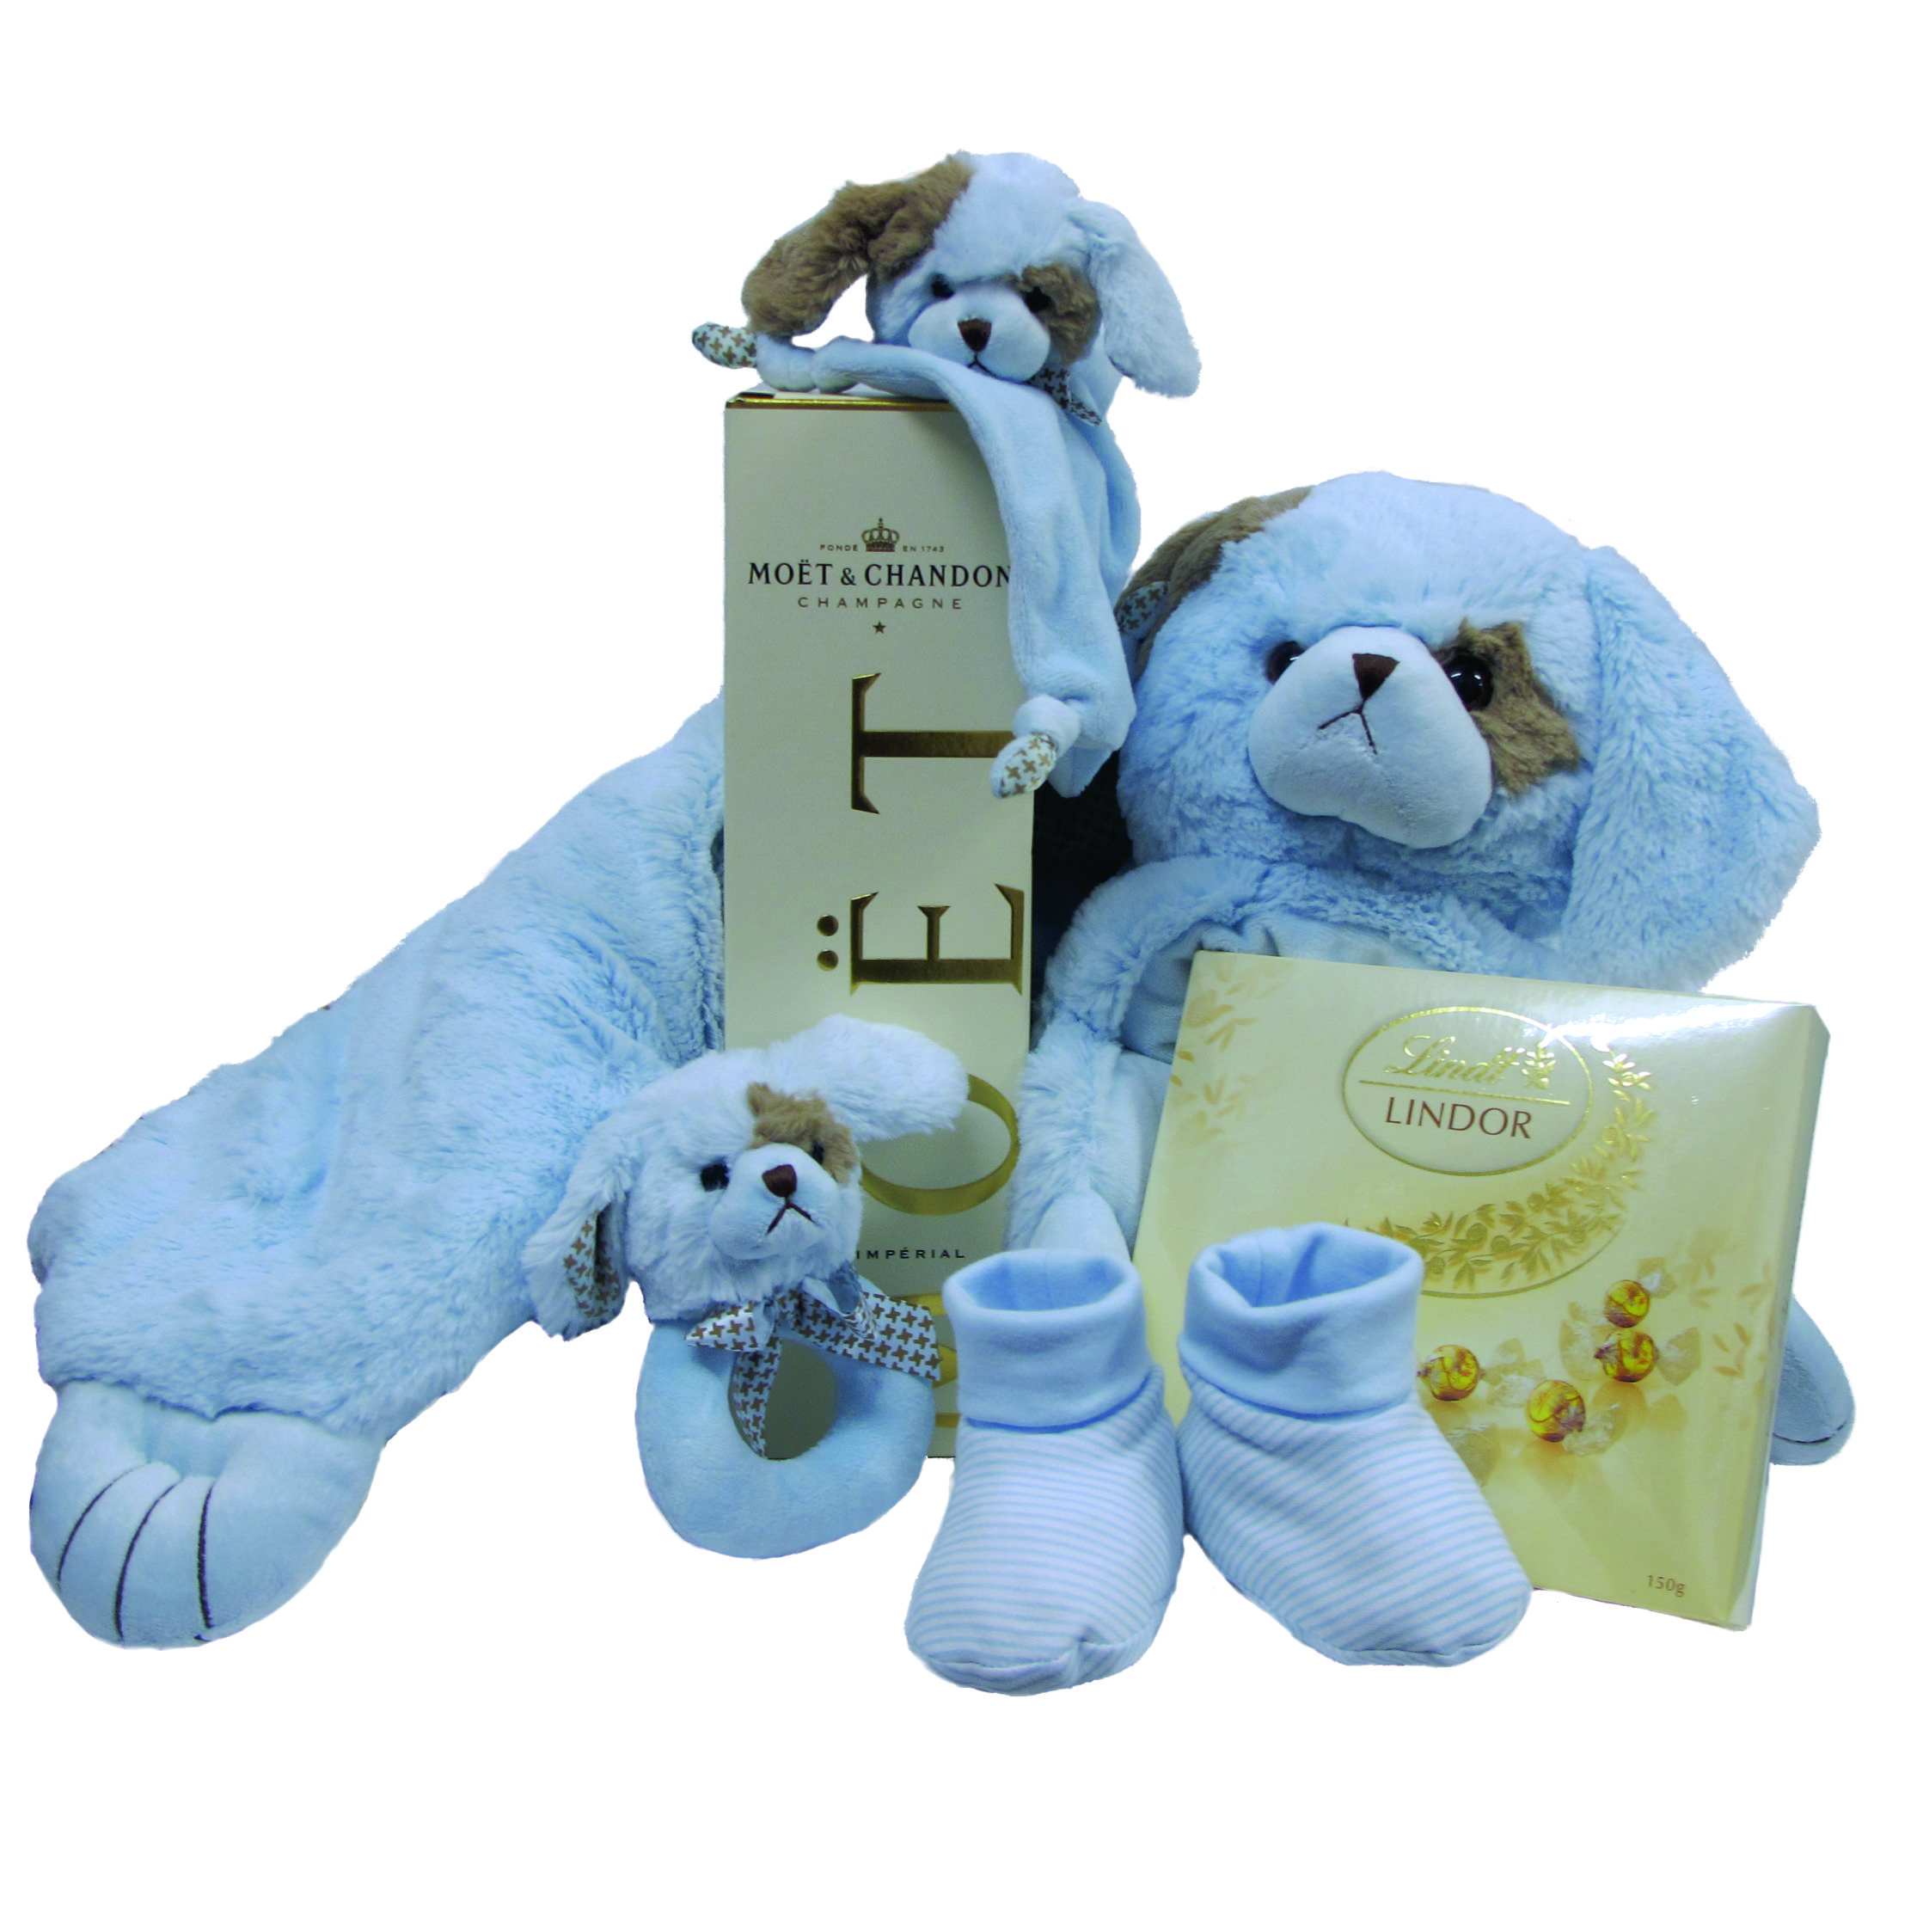 Baby Gifts For The Parents : Top baby shower gift ideas for the discerning parents